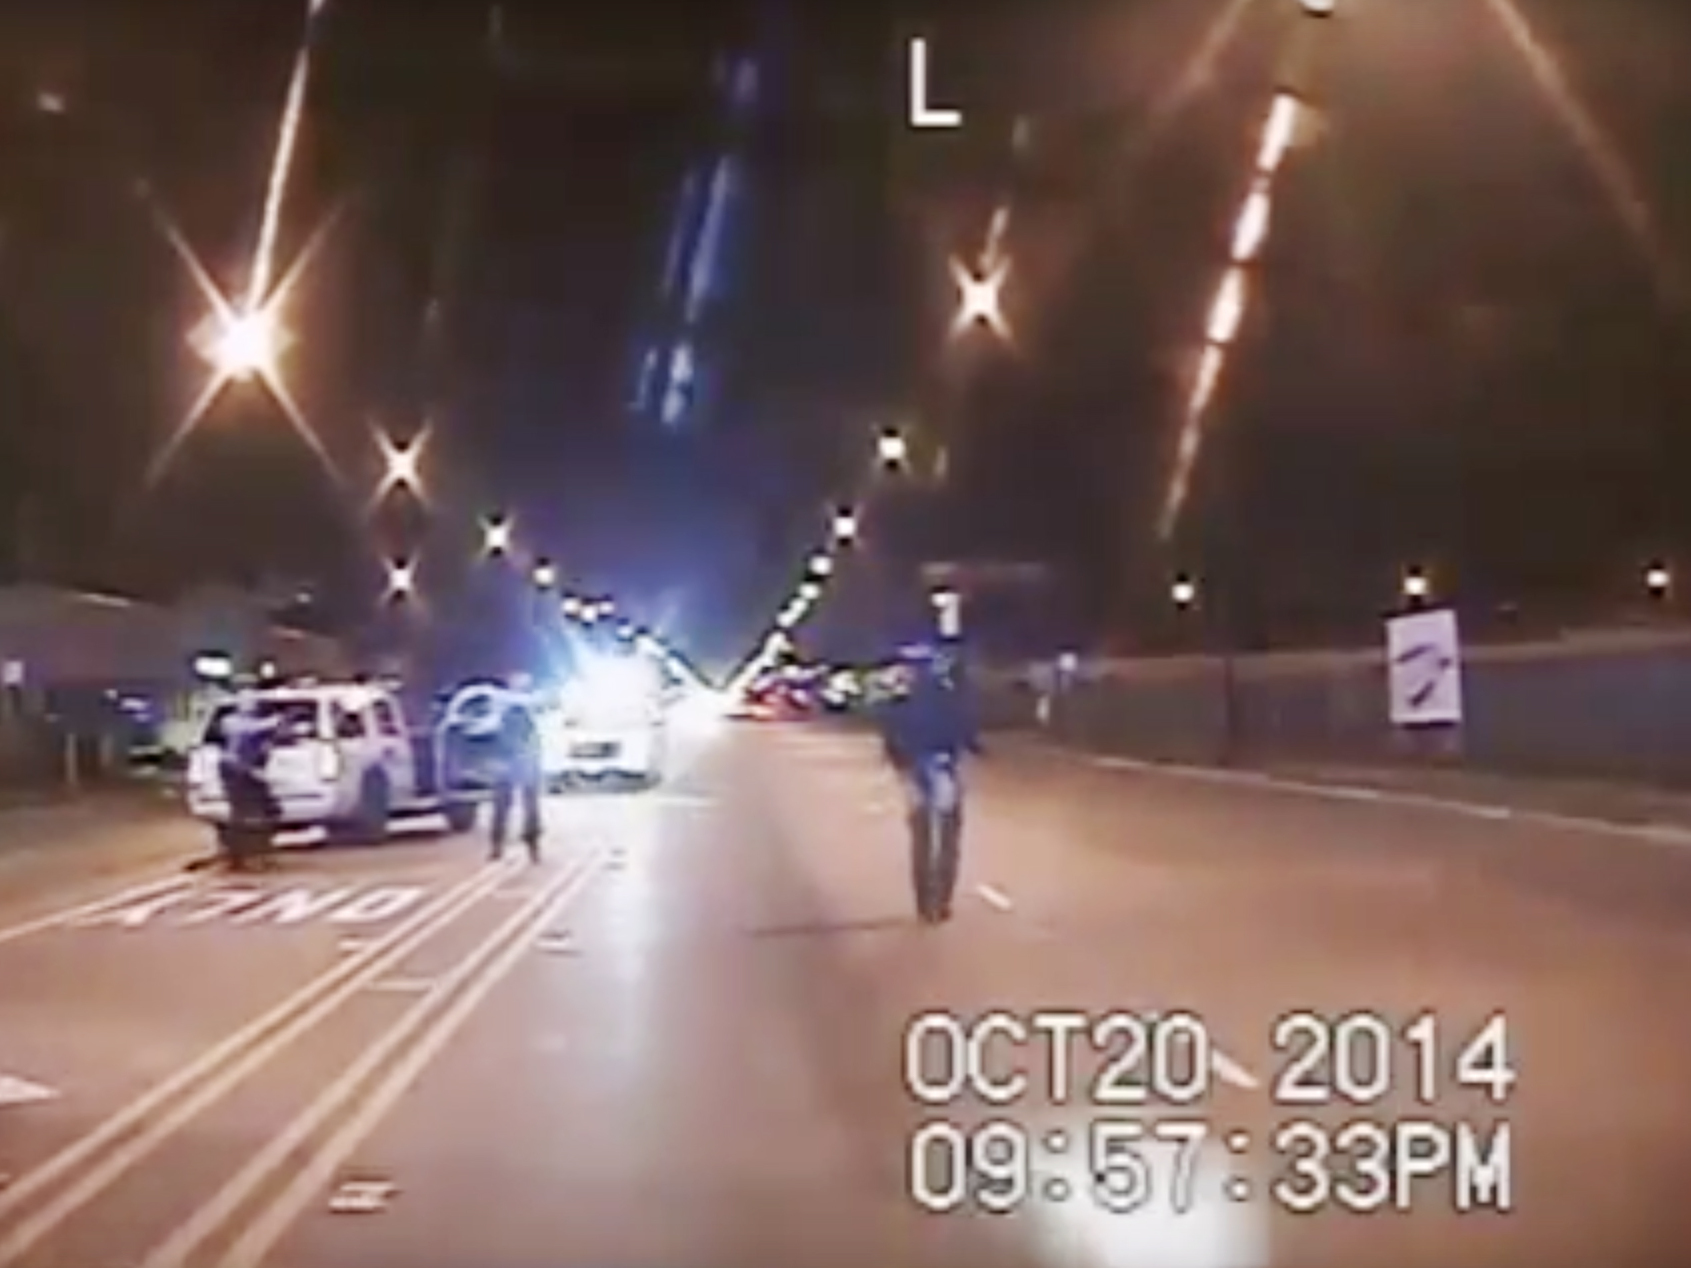 Laquan McDonald, right, walked down the street moments before being fatally shot by a police officer sixteen times in Chicago. The shooting, caught on a police video, was part of a steady drumbeat of scandals that have embroiled the city's police department in recent years.